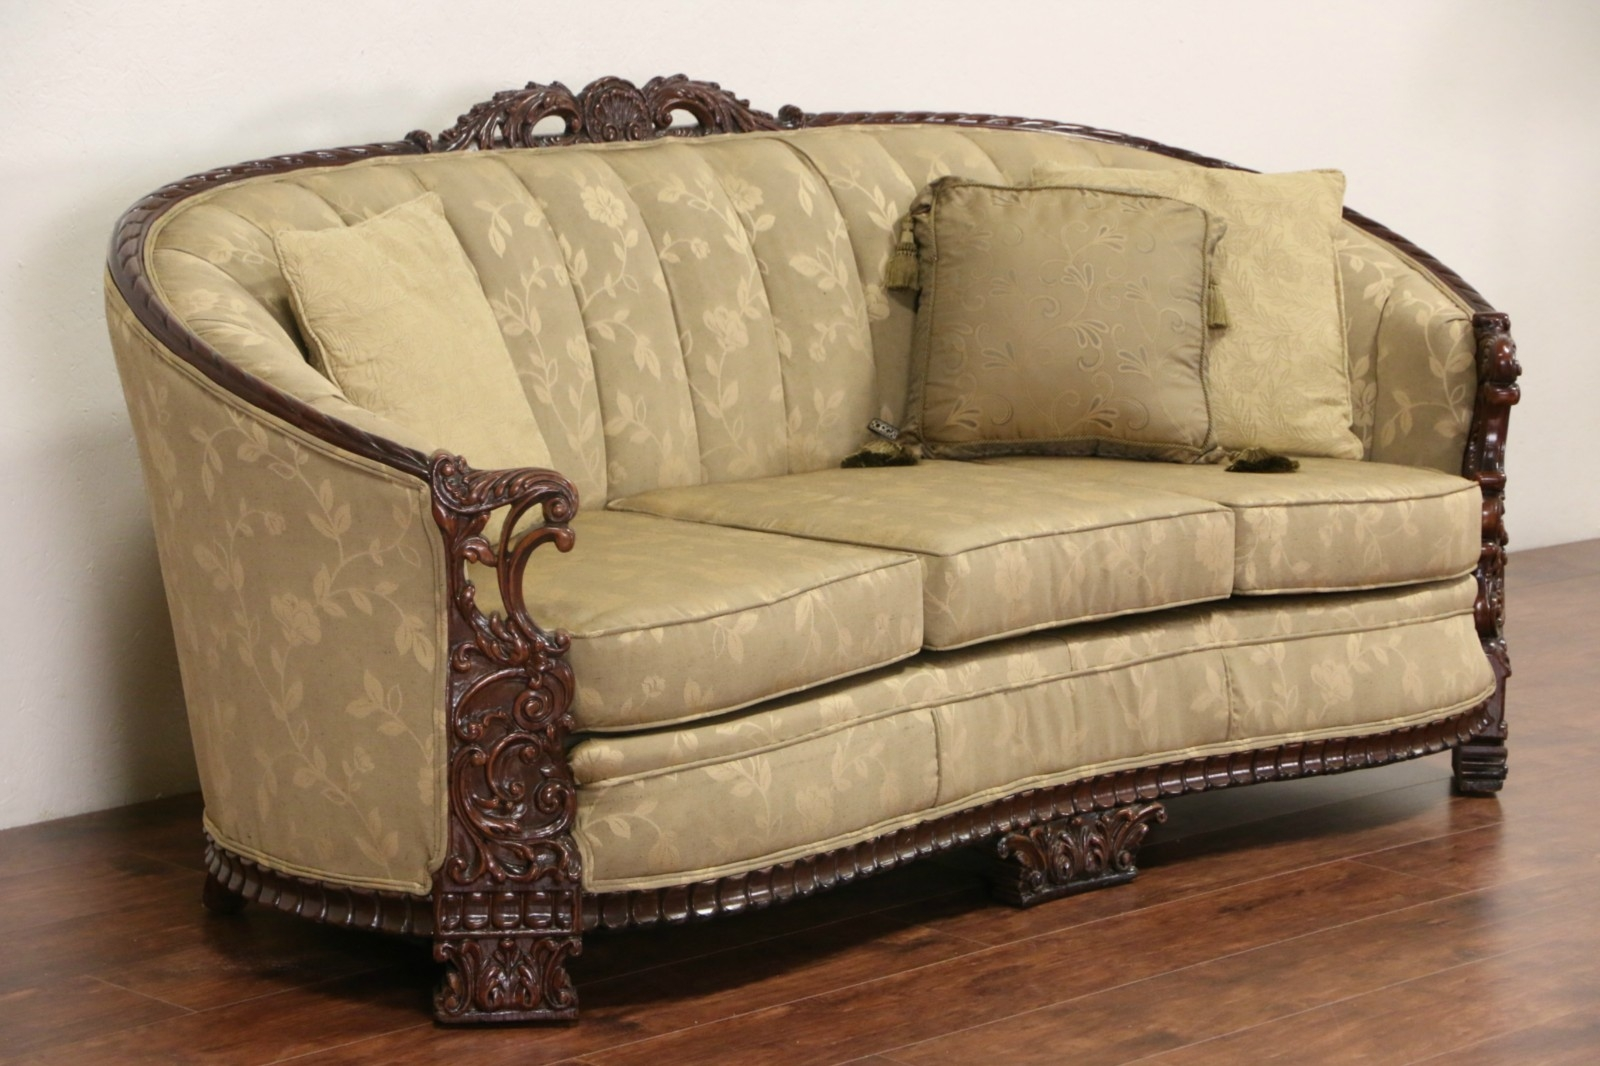 Sold Carved Sofa Club Chair Set 1930s Vintage New Within 1930s Couch (Image 12 of 15)